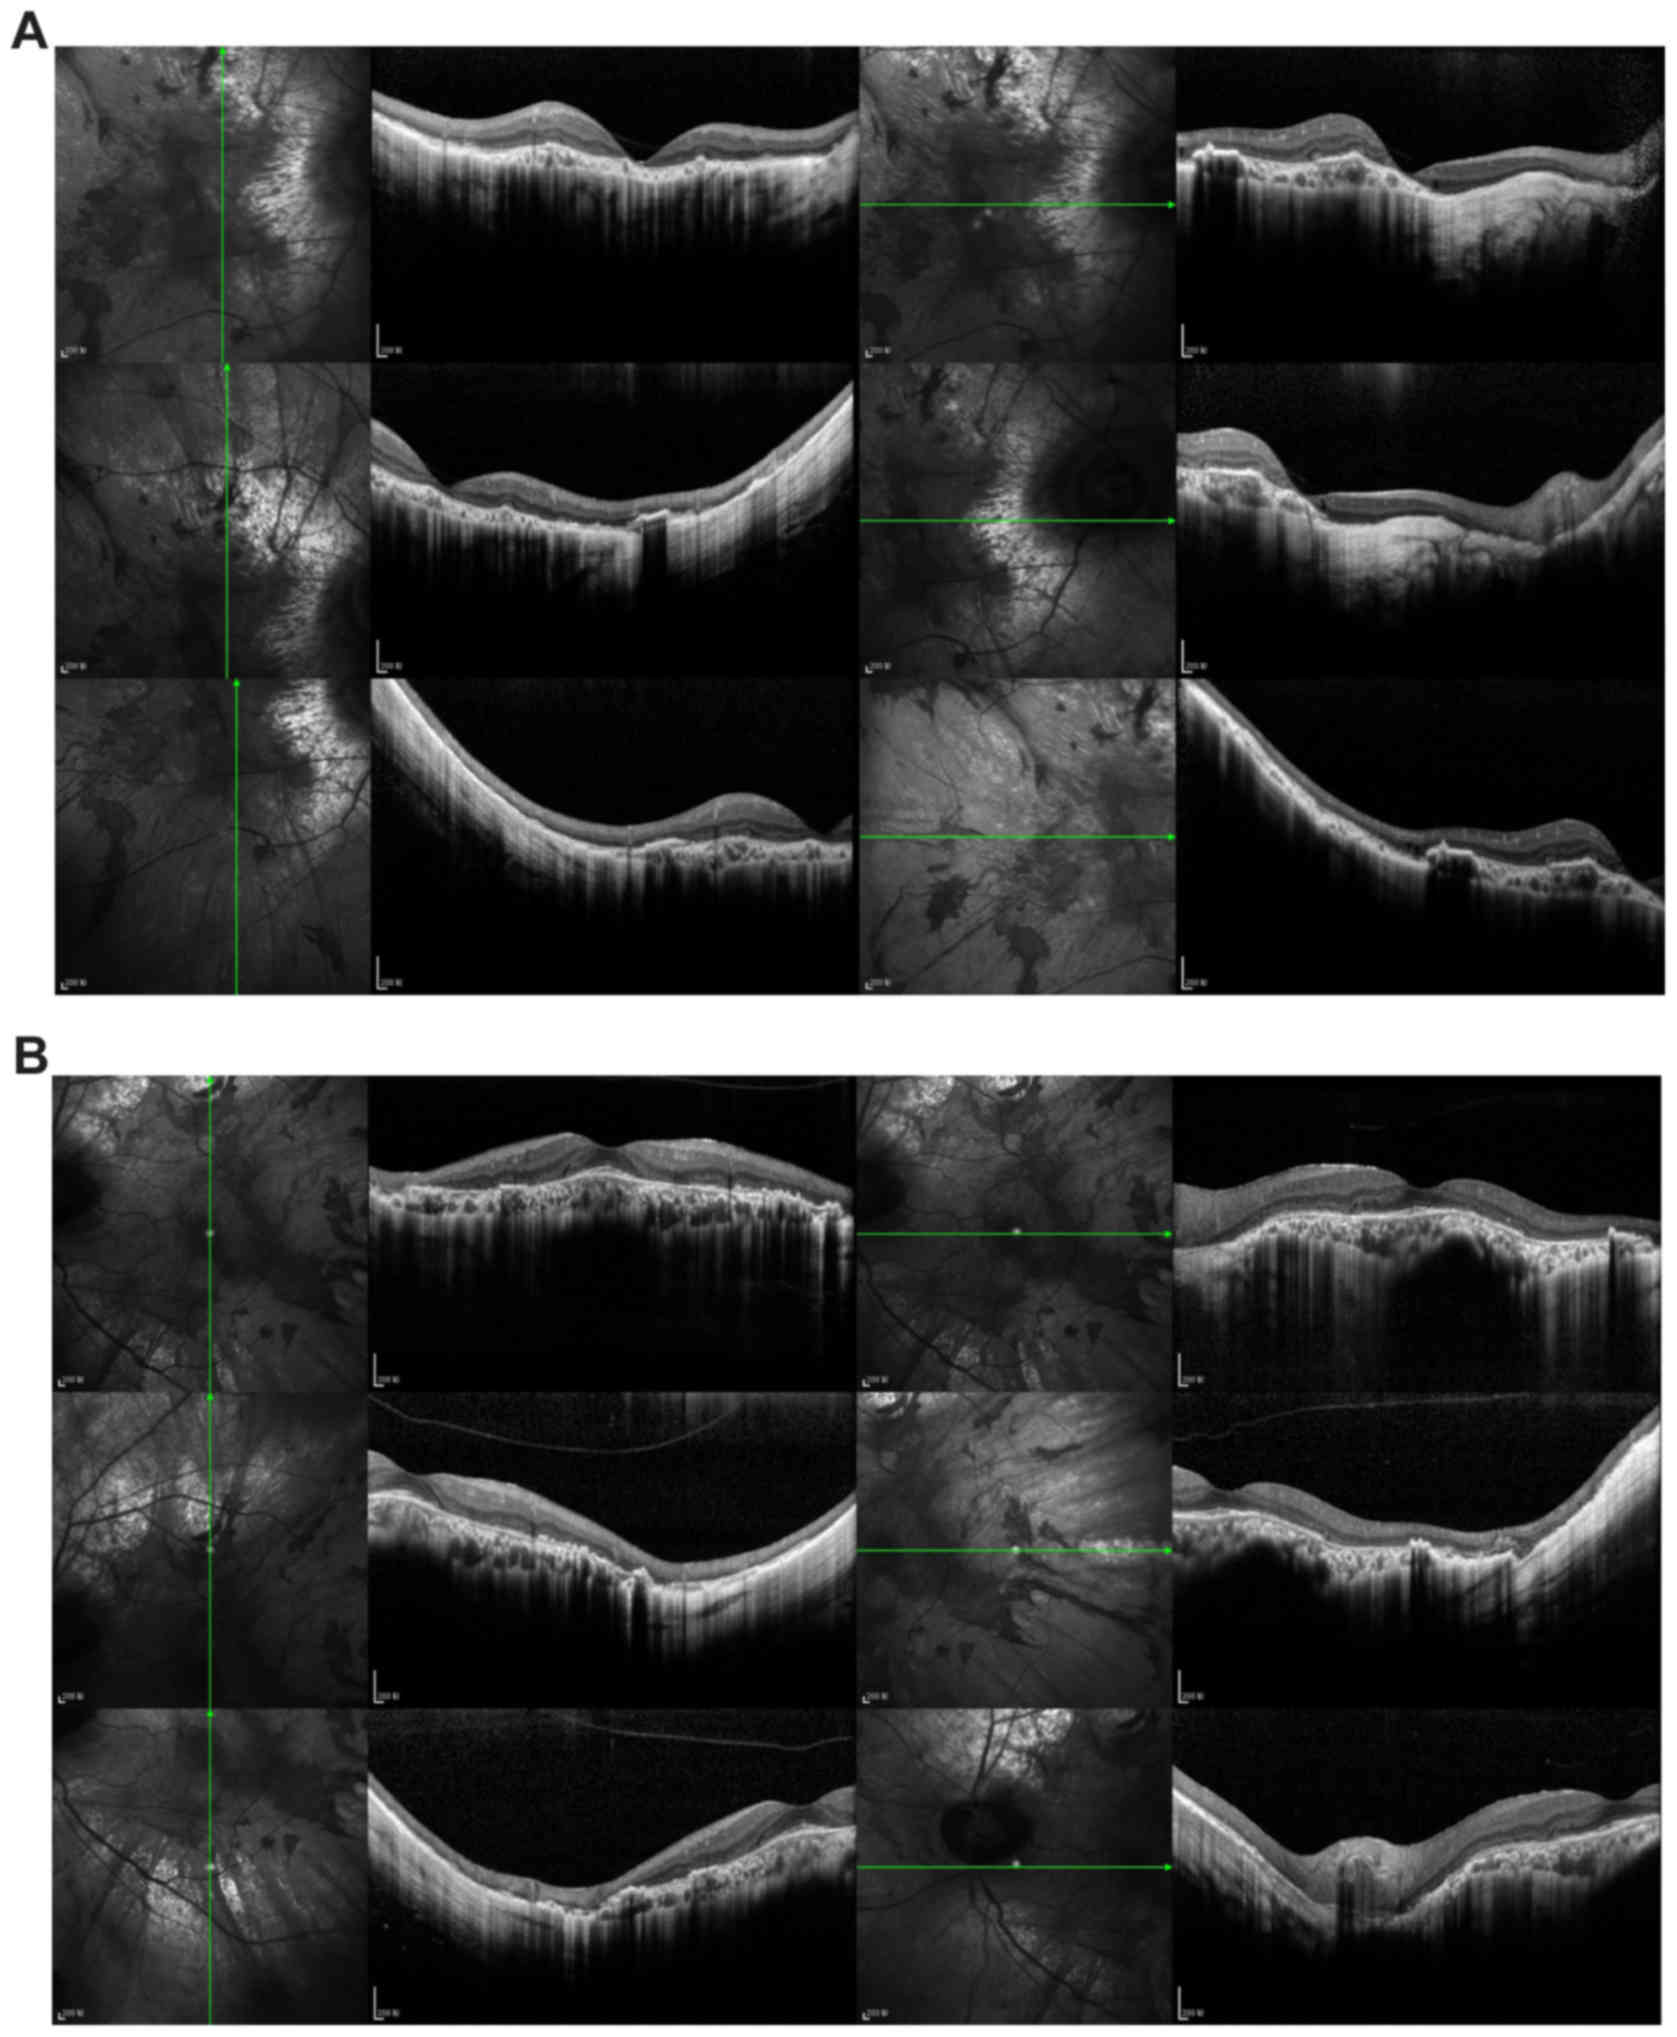 Figure 4 Fundus Autofluorescence Image Demonstrating Areas Of Residual Retinal Pigment Epithelium RPE And The Corresponding Optical Coherence Tomography